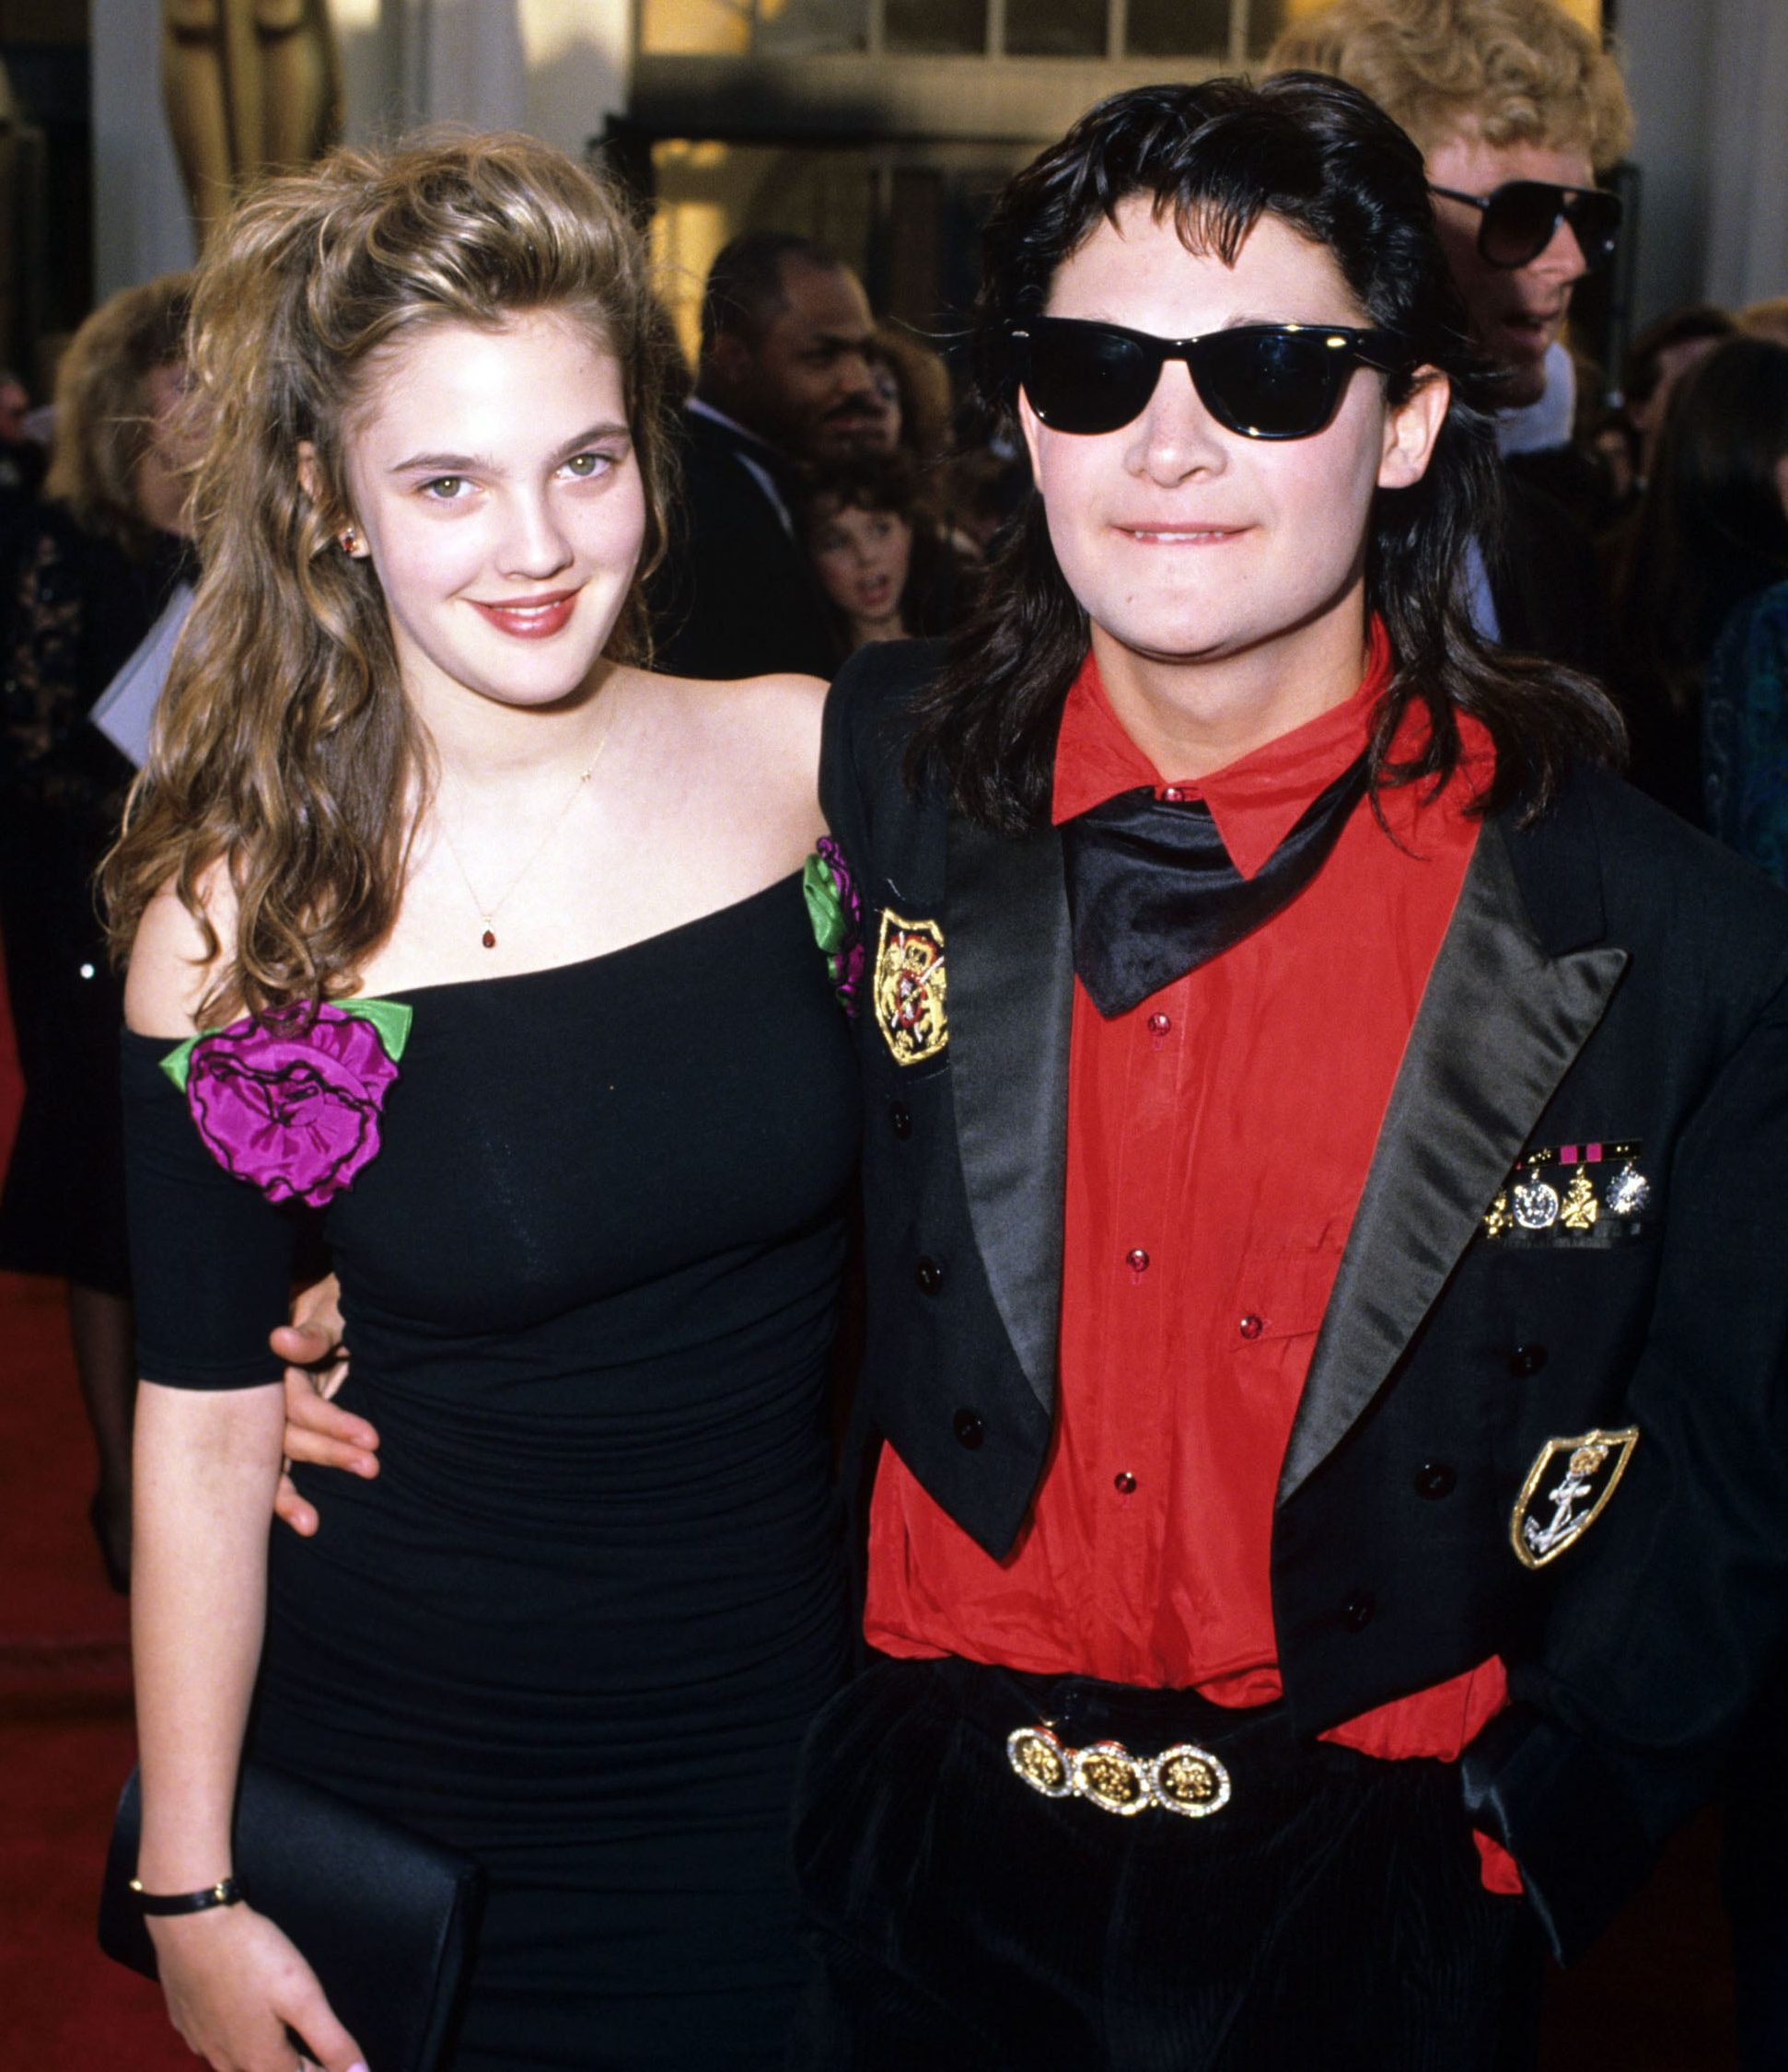 corey2 e1584447129759 20 Things You Might Not Have Realised About Drew Barrymore